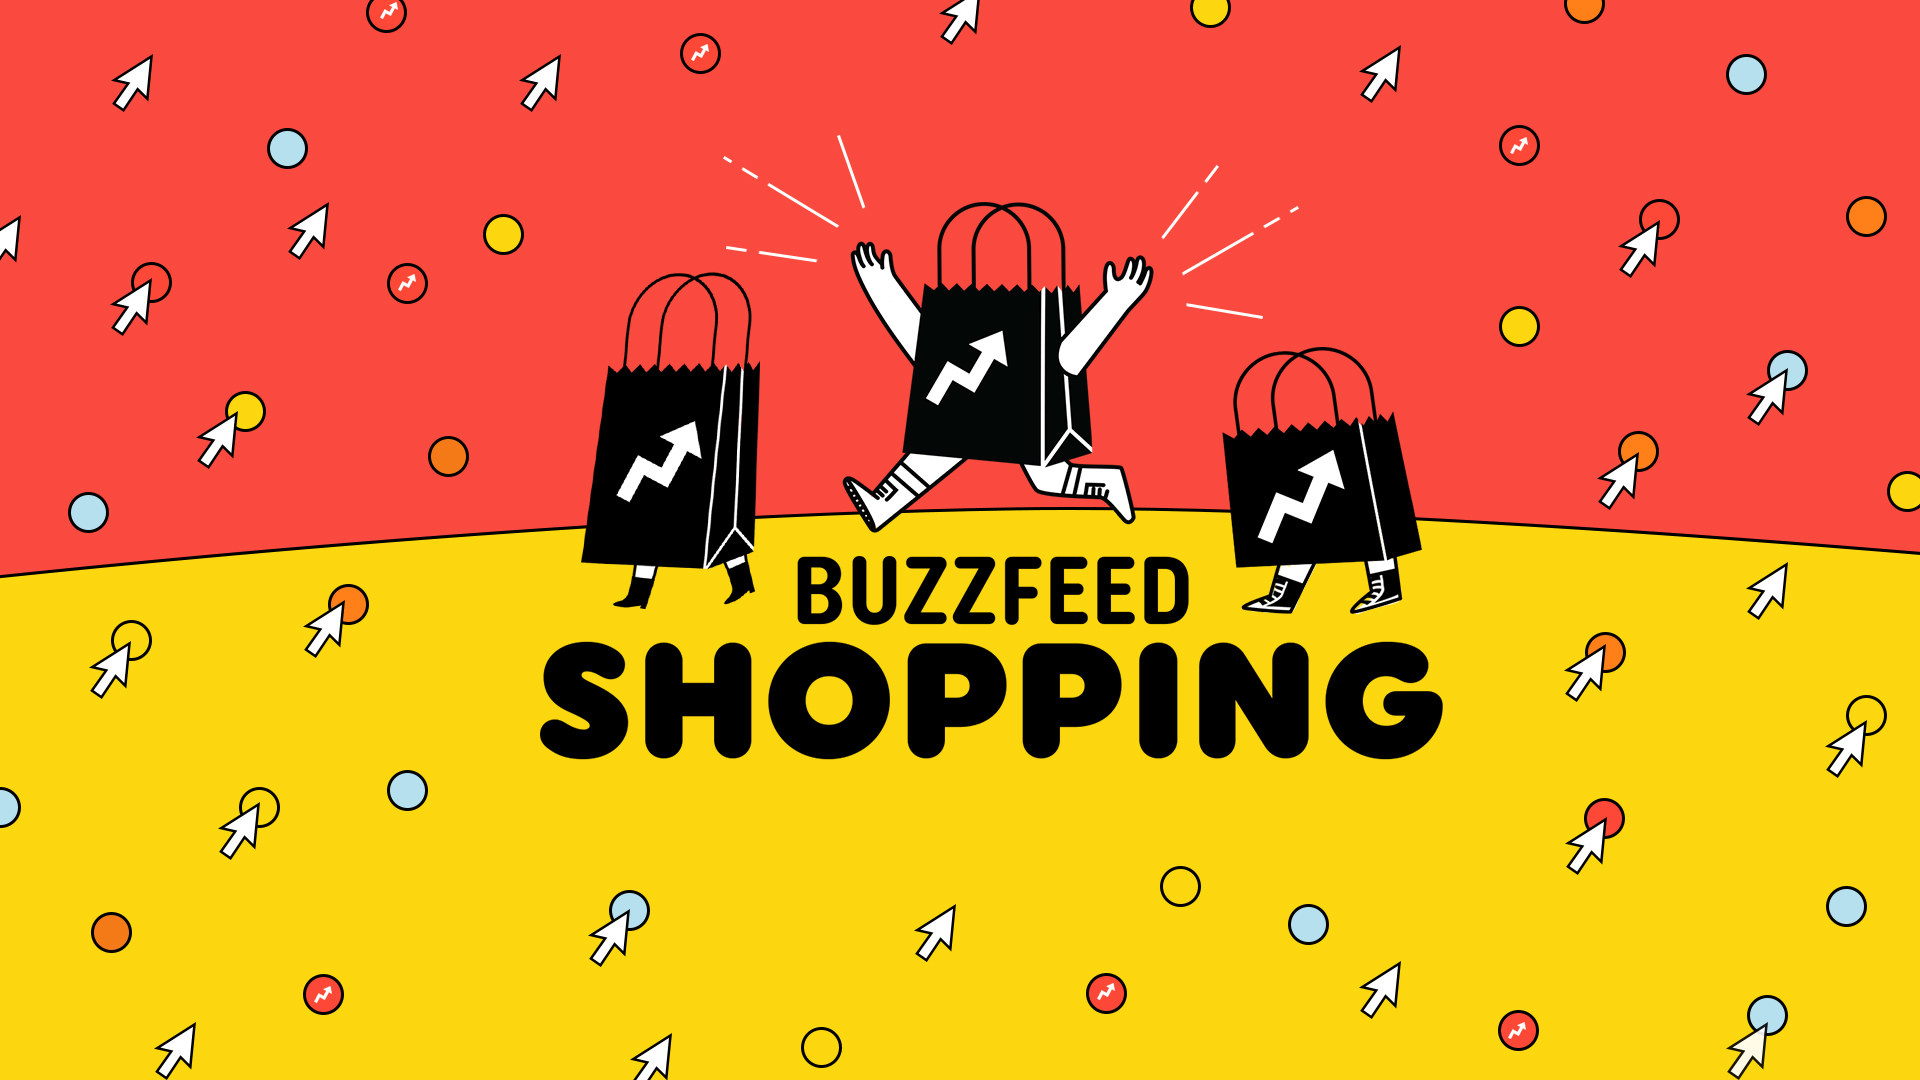 A BuzzFeed Shopping banner featuring shopping bags with legs